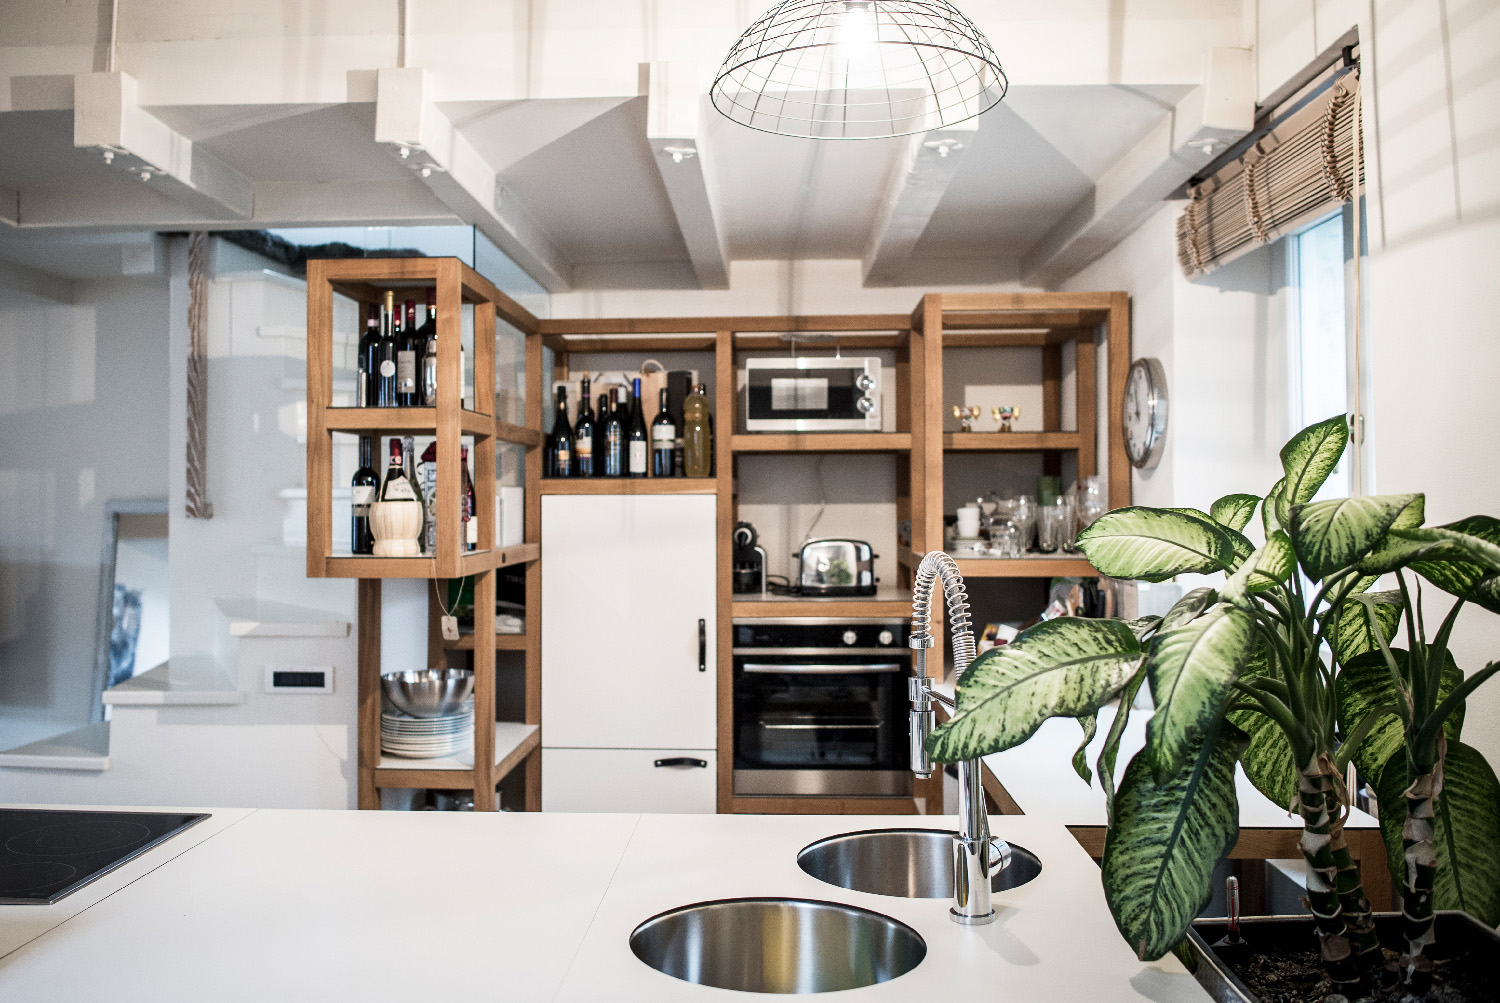 The resolution of the kitchen in a modular system opens up new possibilities of flexible and convertible designs Alex Filz